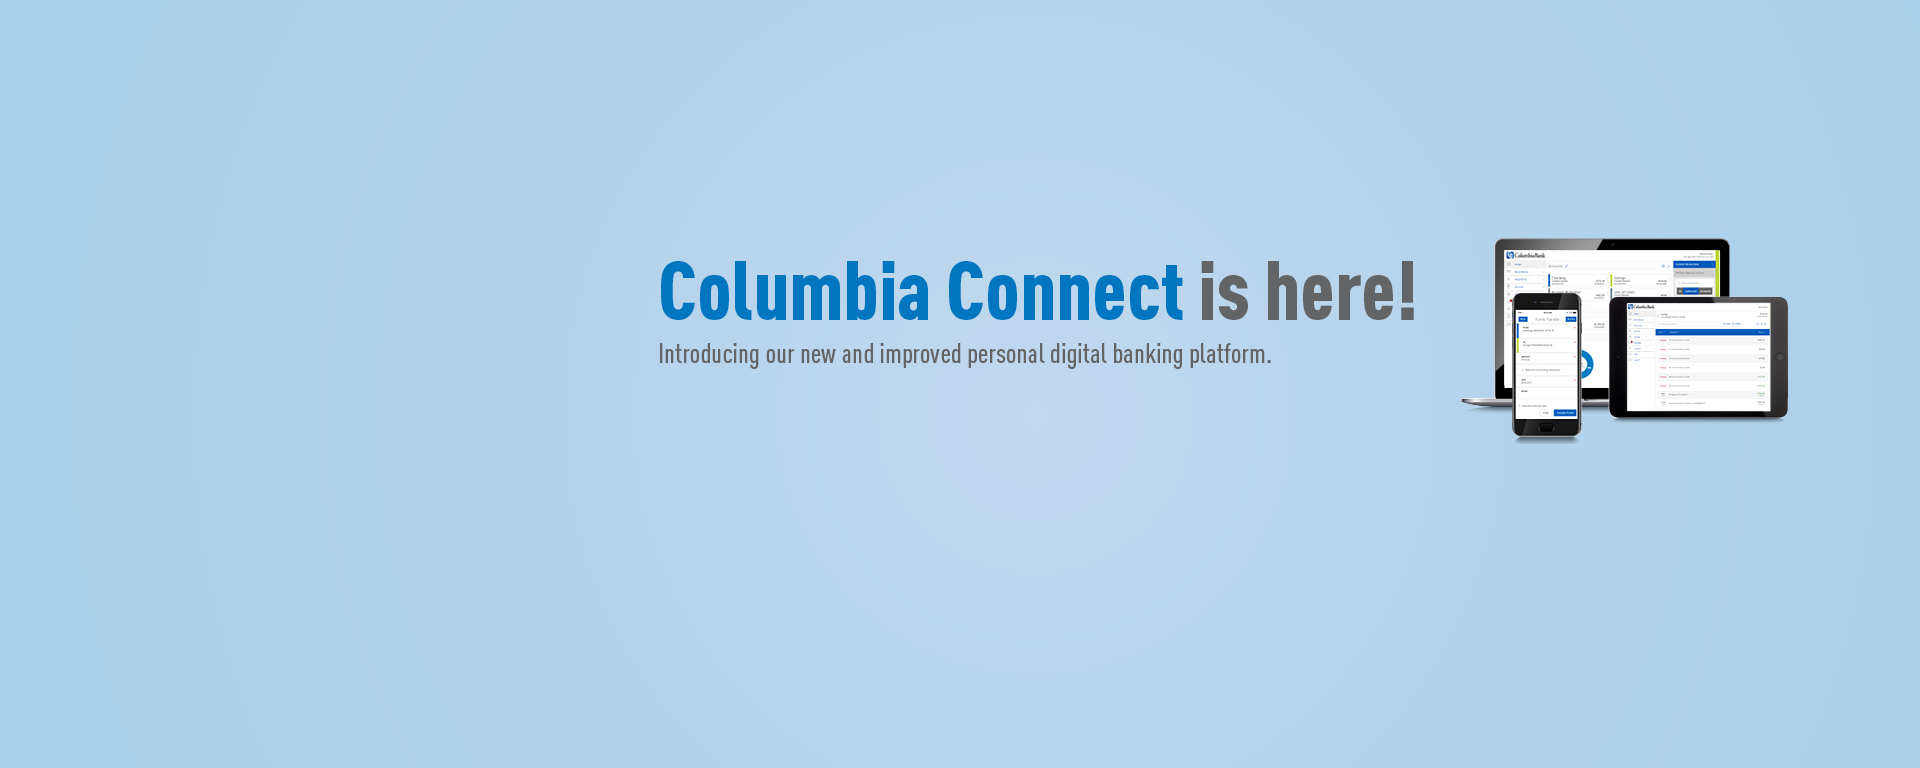 Columbia Connect is here